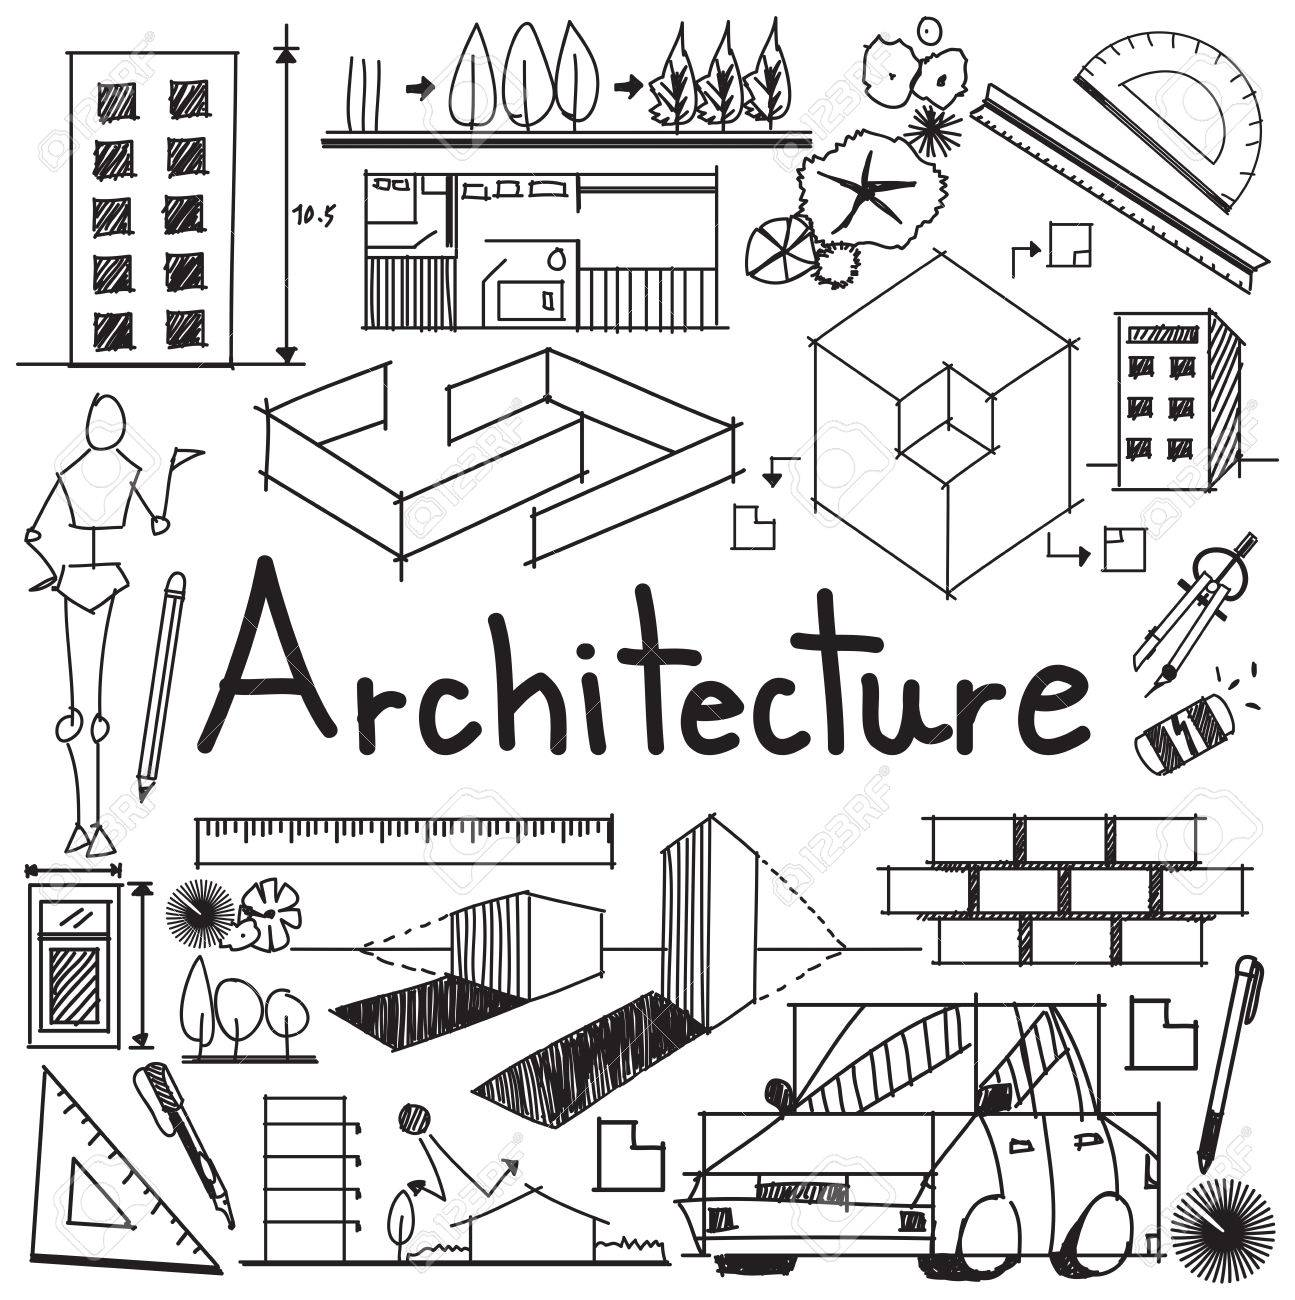 Architecture and architect design profession and building exterior architecture and architect design profession and building exterior blueprint handwriting doodle tool sign and symbol in malvernweather Image collections